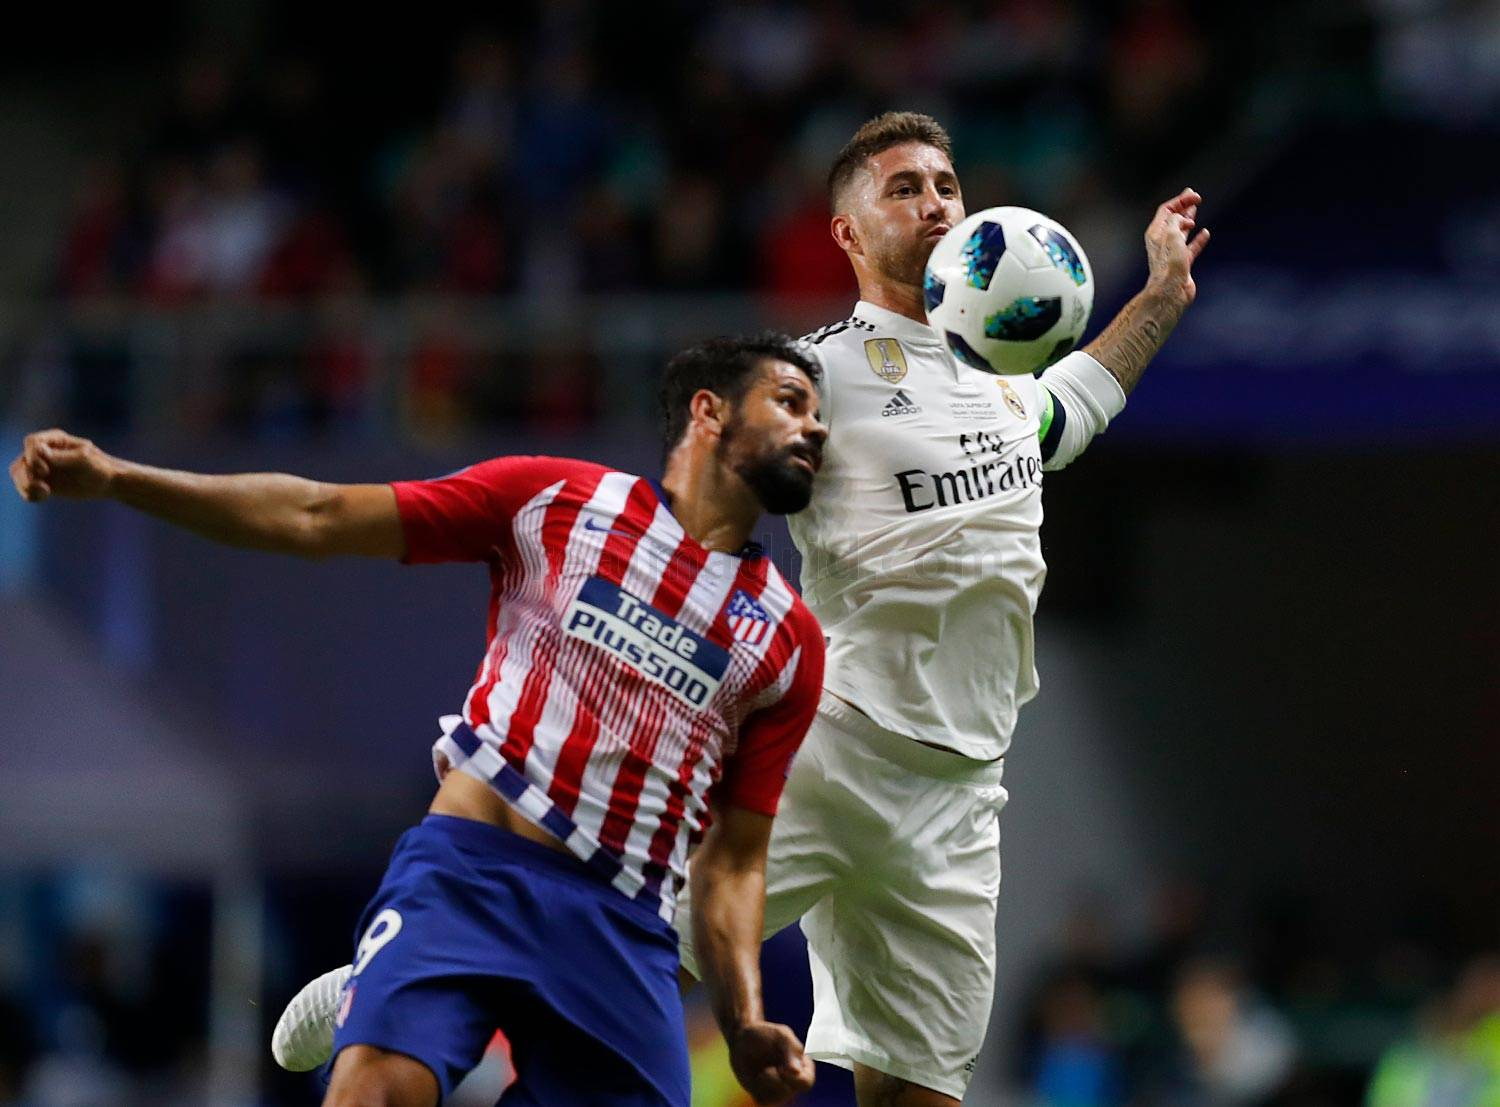 Real Madrid - Real Madrid - Atlético de Madrid - 15-08-2018